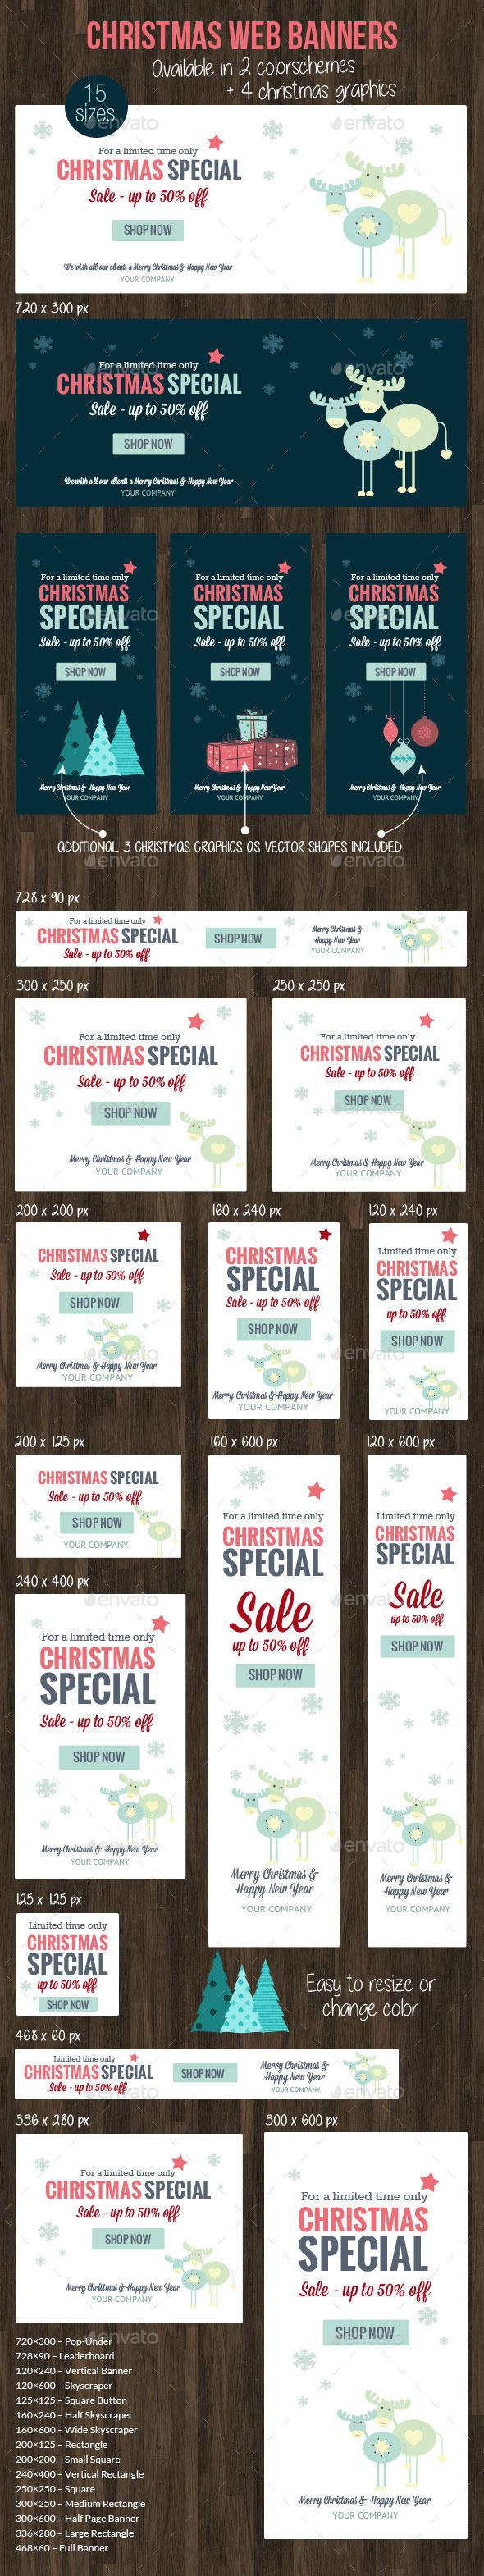 Christmas Web Banner 2015 Template PSD   Buy and Download: http://graphicriver.net/item/christmas-web-banner-2015/9698881?WT.oss_phrase=&WT.oss_rank=4&WT.z_author=corrella&WT.ac=search_thumb&ref=ksioks